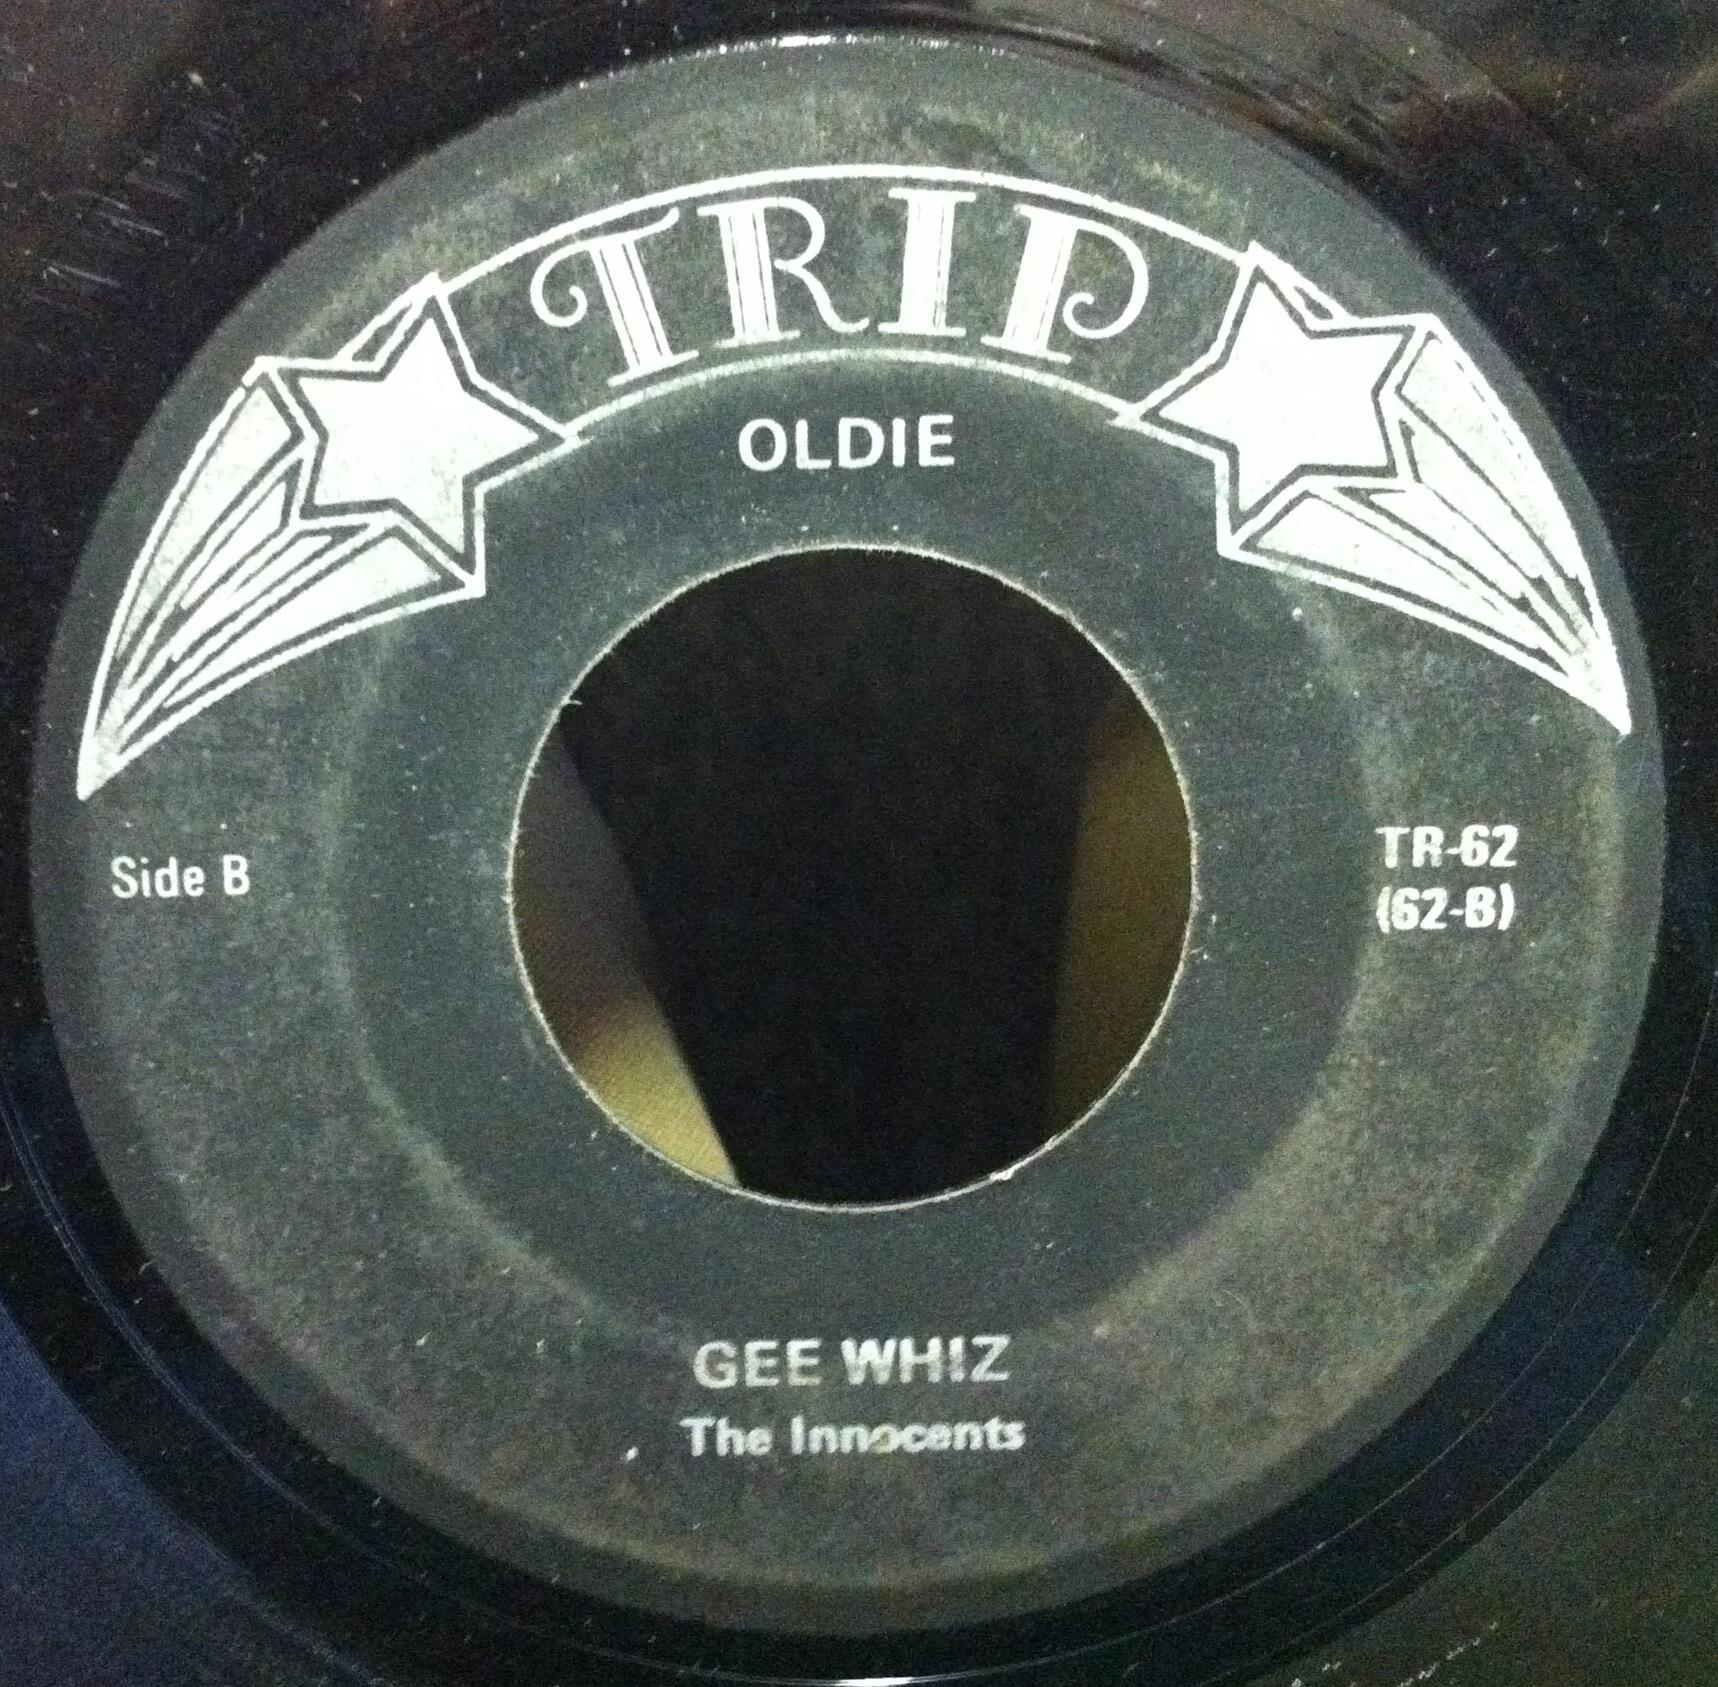 KATHY YOUNG & THE INNOCENTS - A Thousand Stars / Gee Whiz